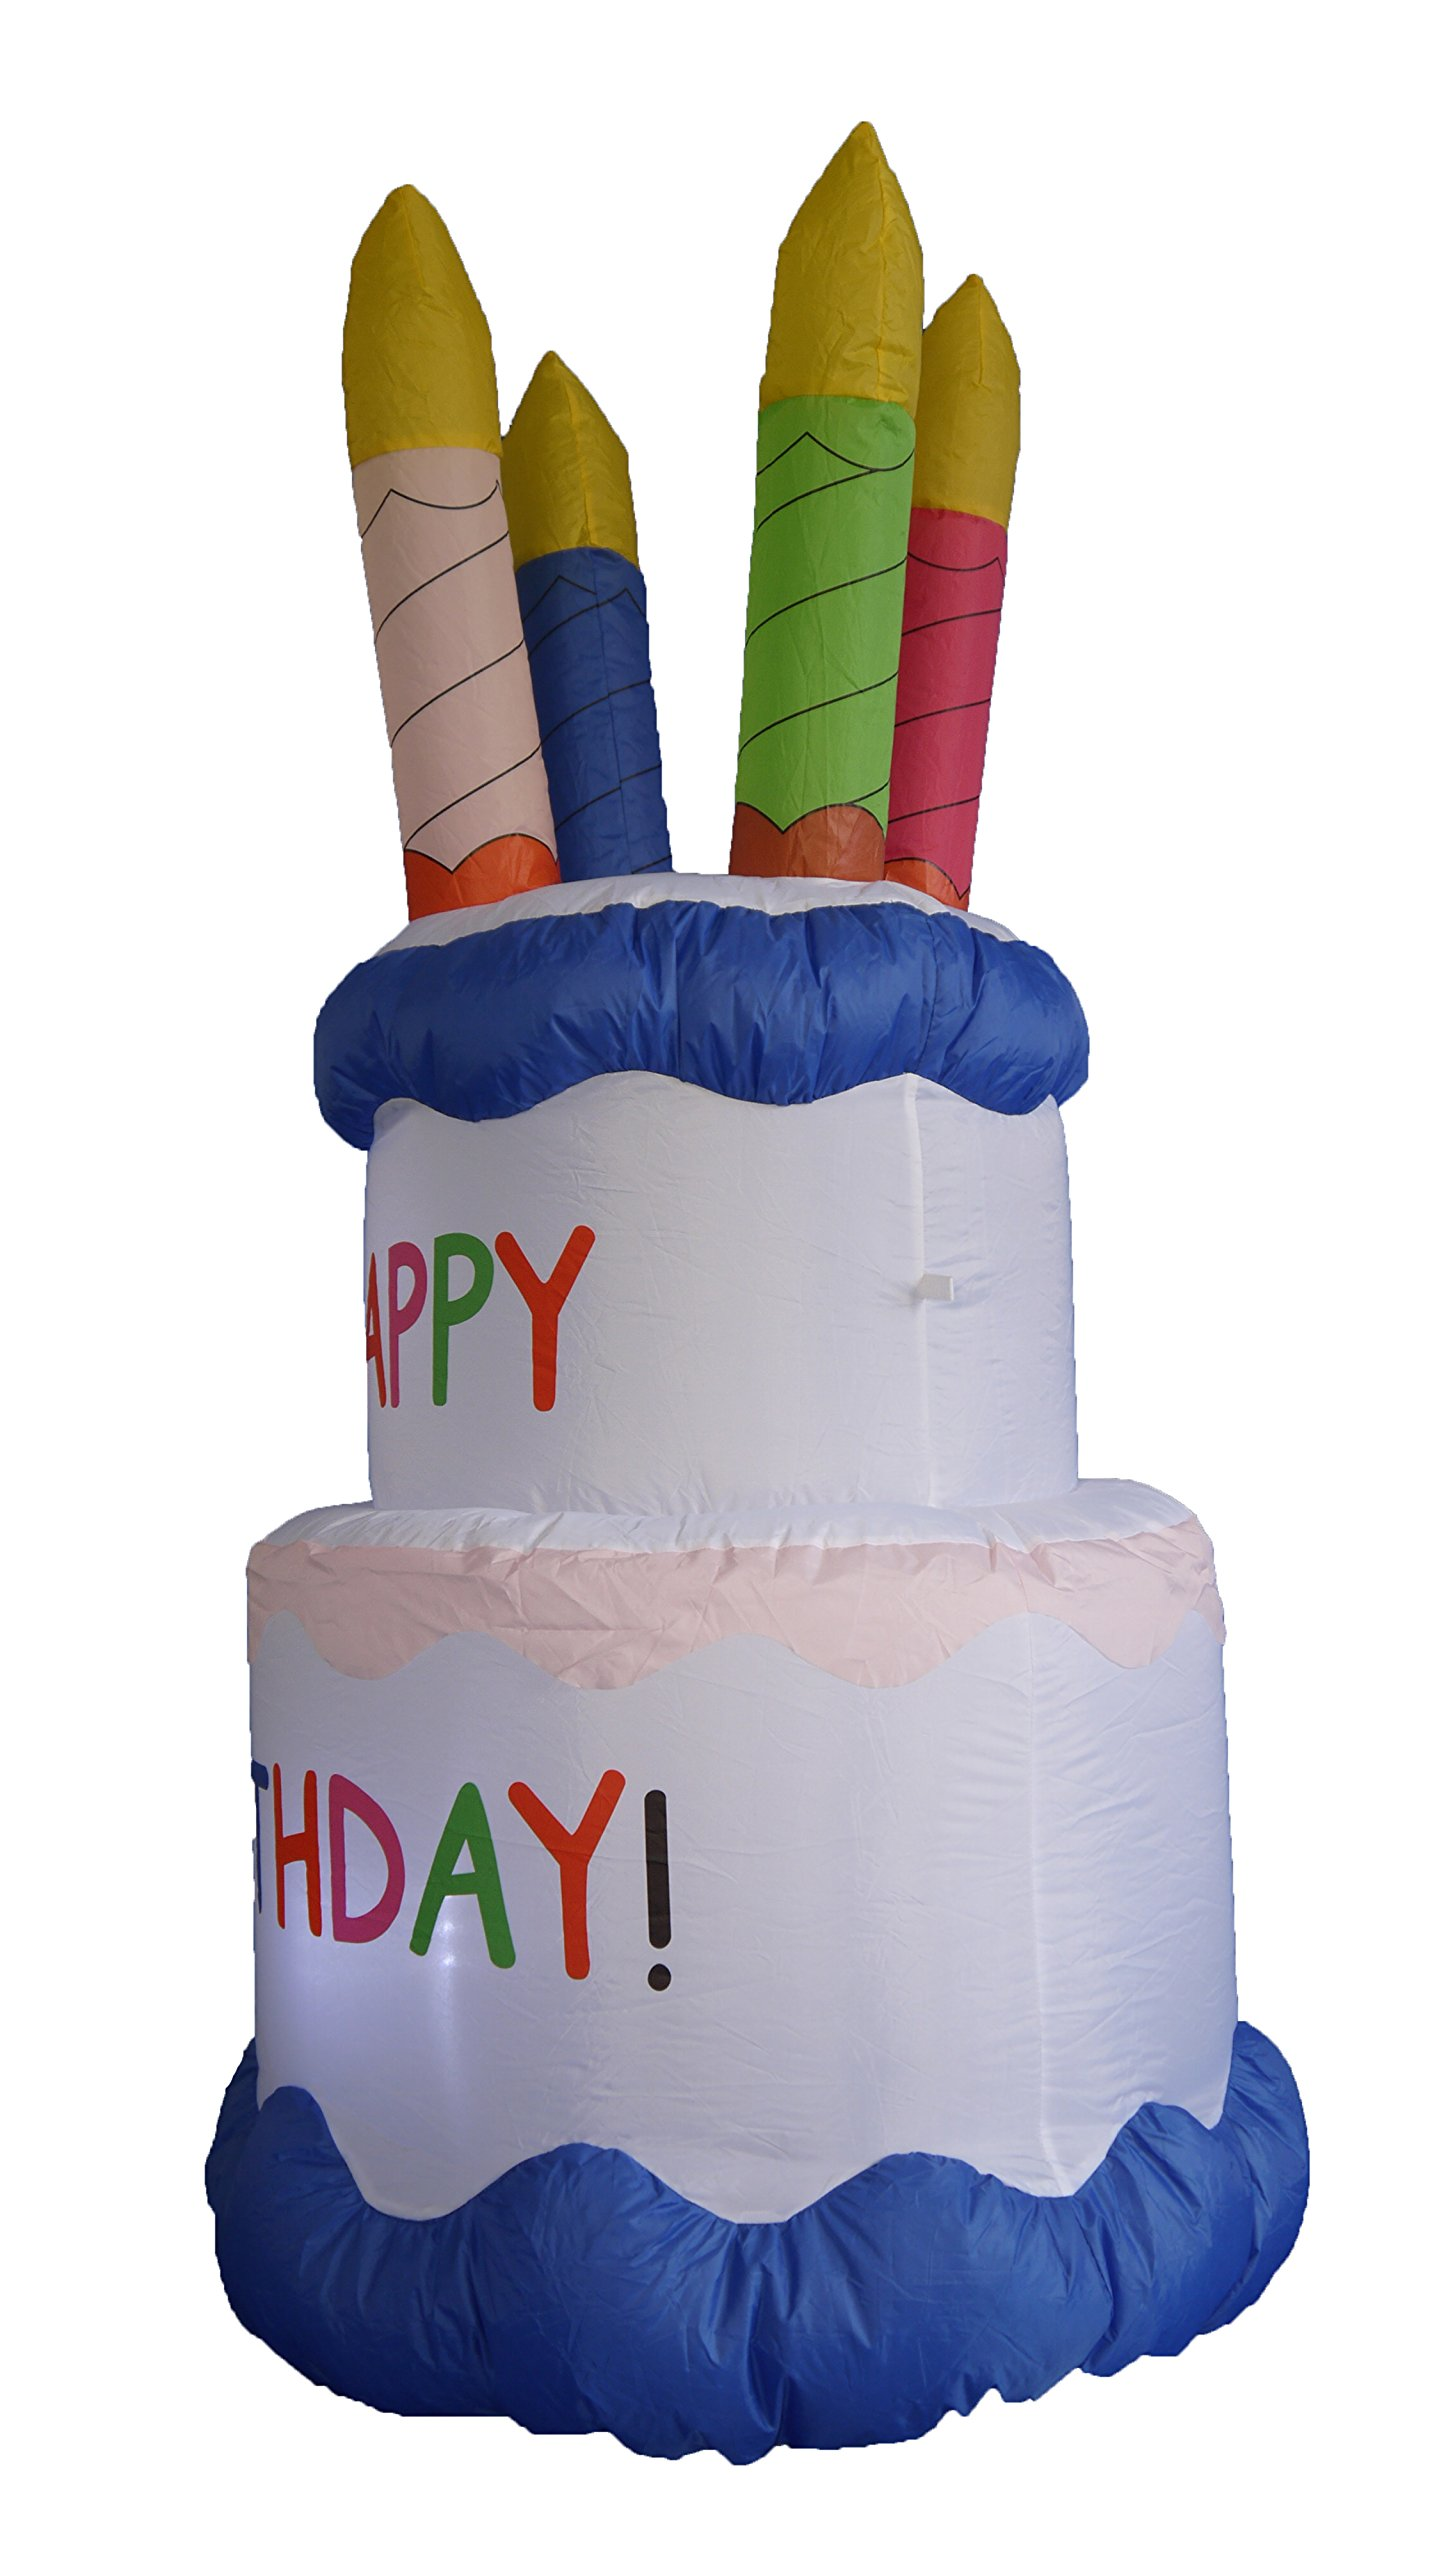 6 Foot Inflatable Happy Birthday Cake with Candles Yard Decoration by BZB Goods (Image #2)